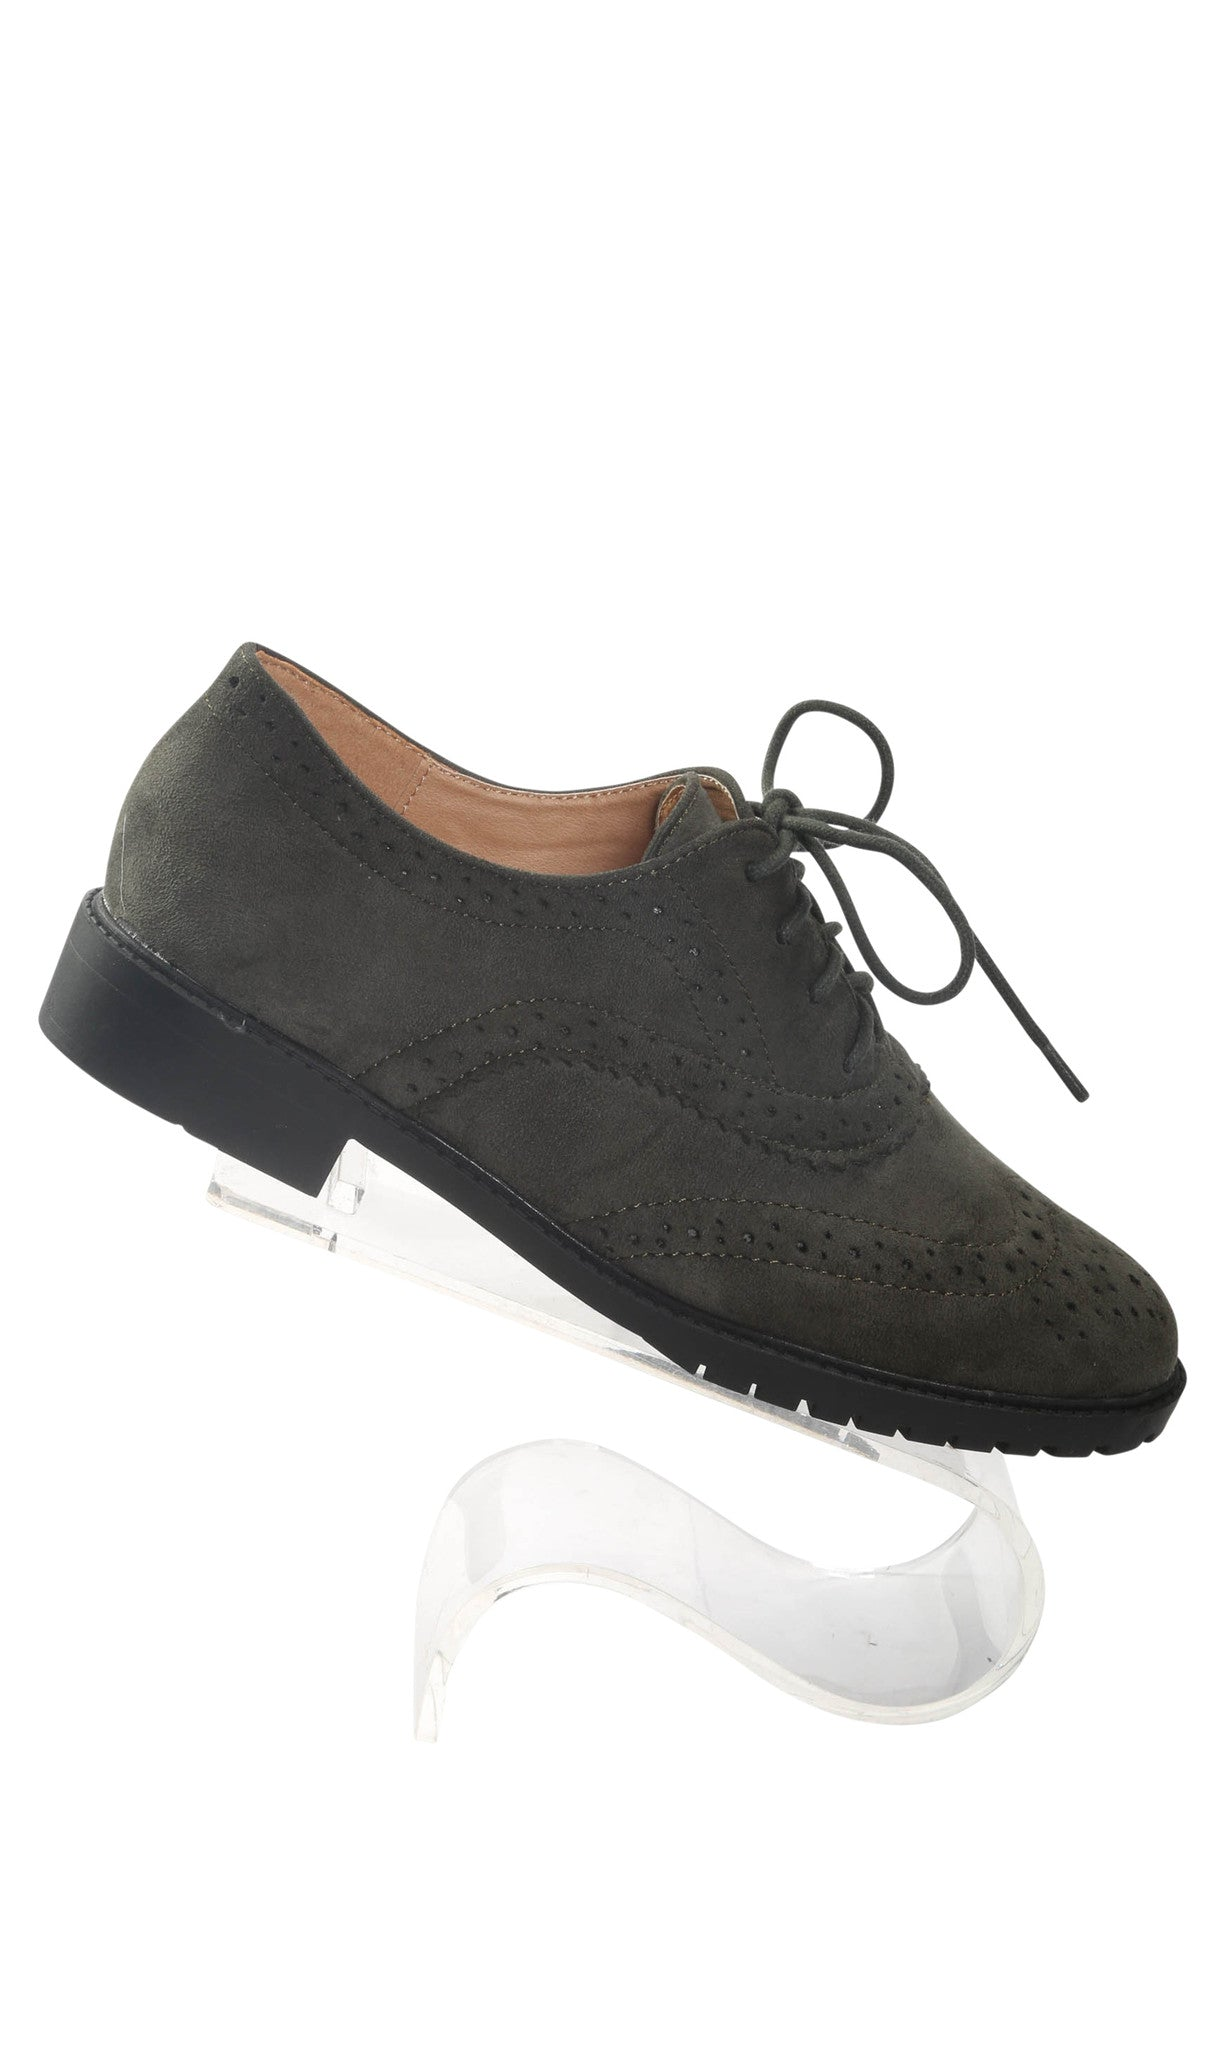 Oxford Suede Flat Shoes